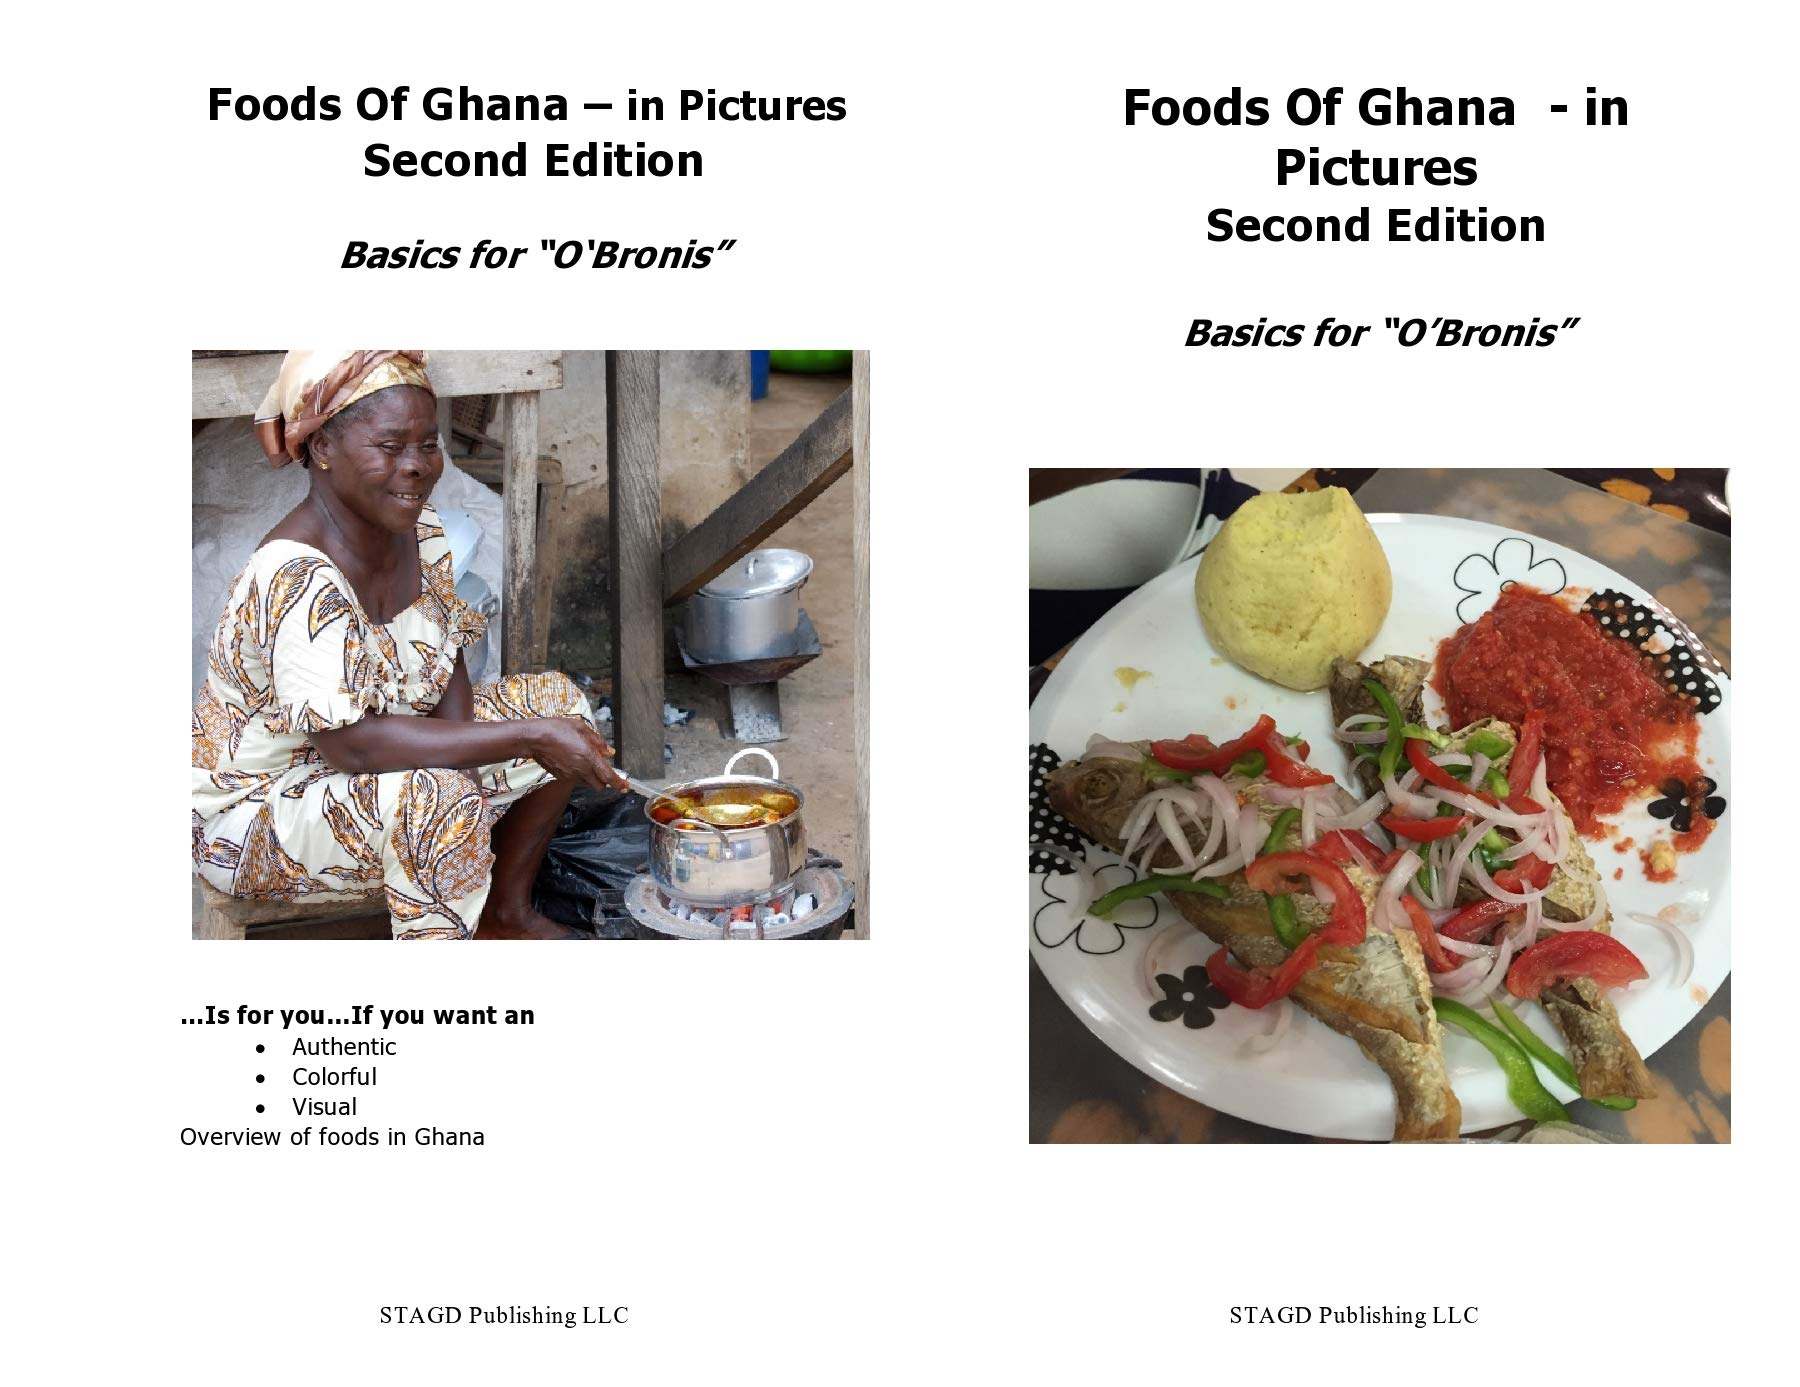 Foods Of Ghana   In Pictures Second Edition  Basics For 'O'Bronis'  English Edition